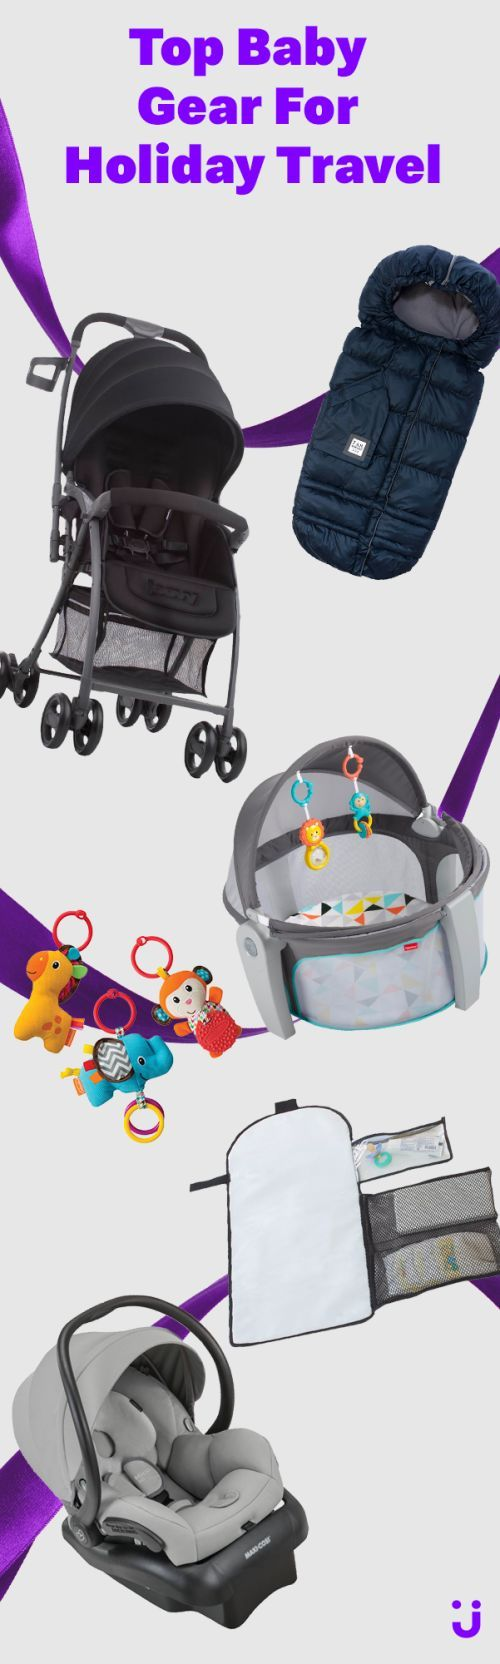 Looking for the best baby gear to travel to Grandma's this holiday season? Let Jet.com be your one-stop shop! Save on car seats, strollers, bouncers, baby monitors, walkers, and more!